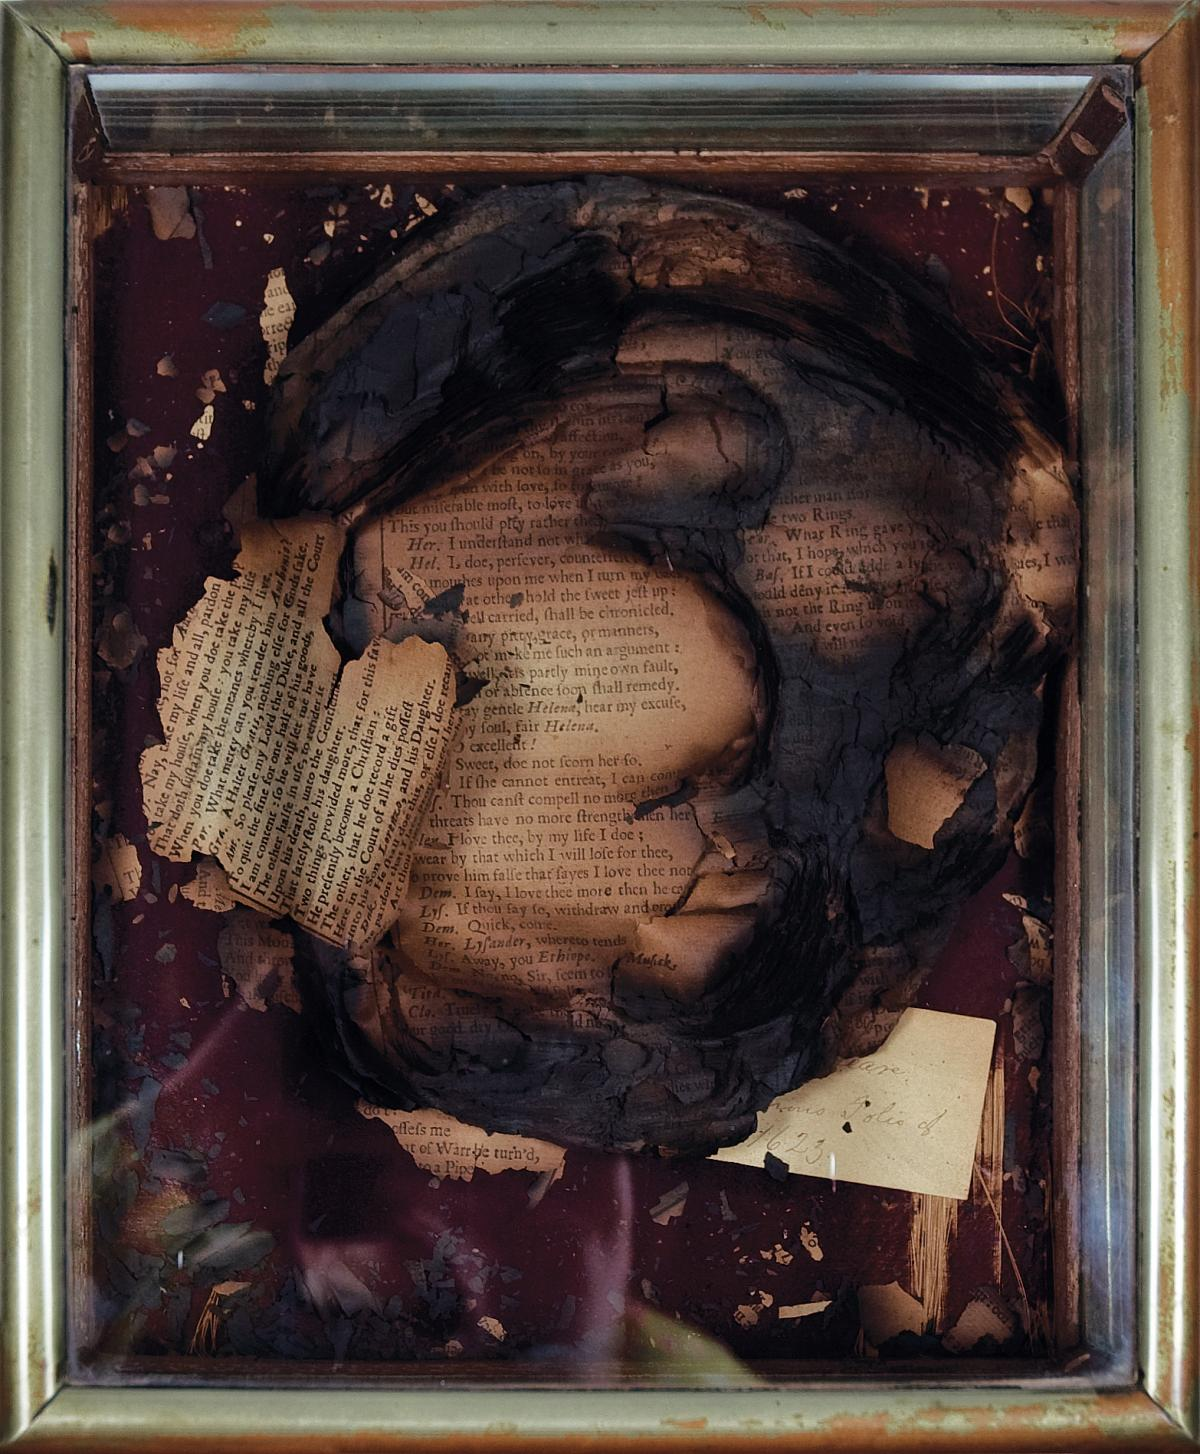 the charred remains of Edwin Forrest's copy of the First Folio